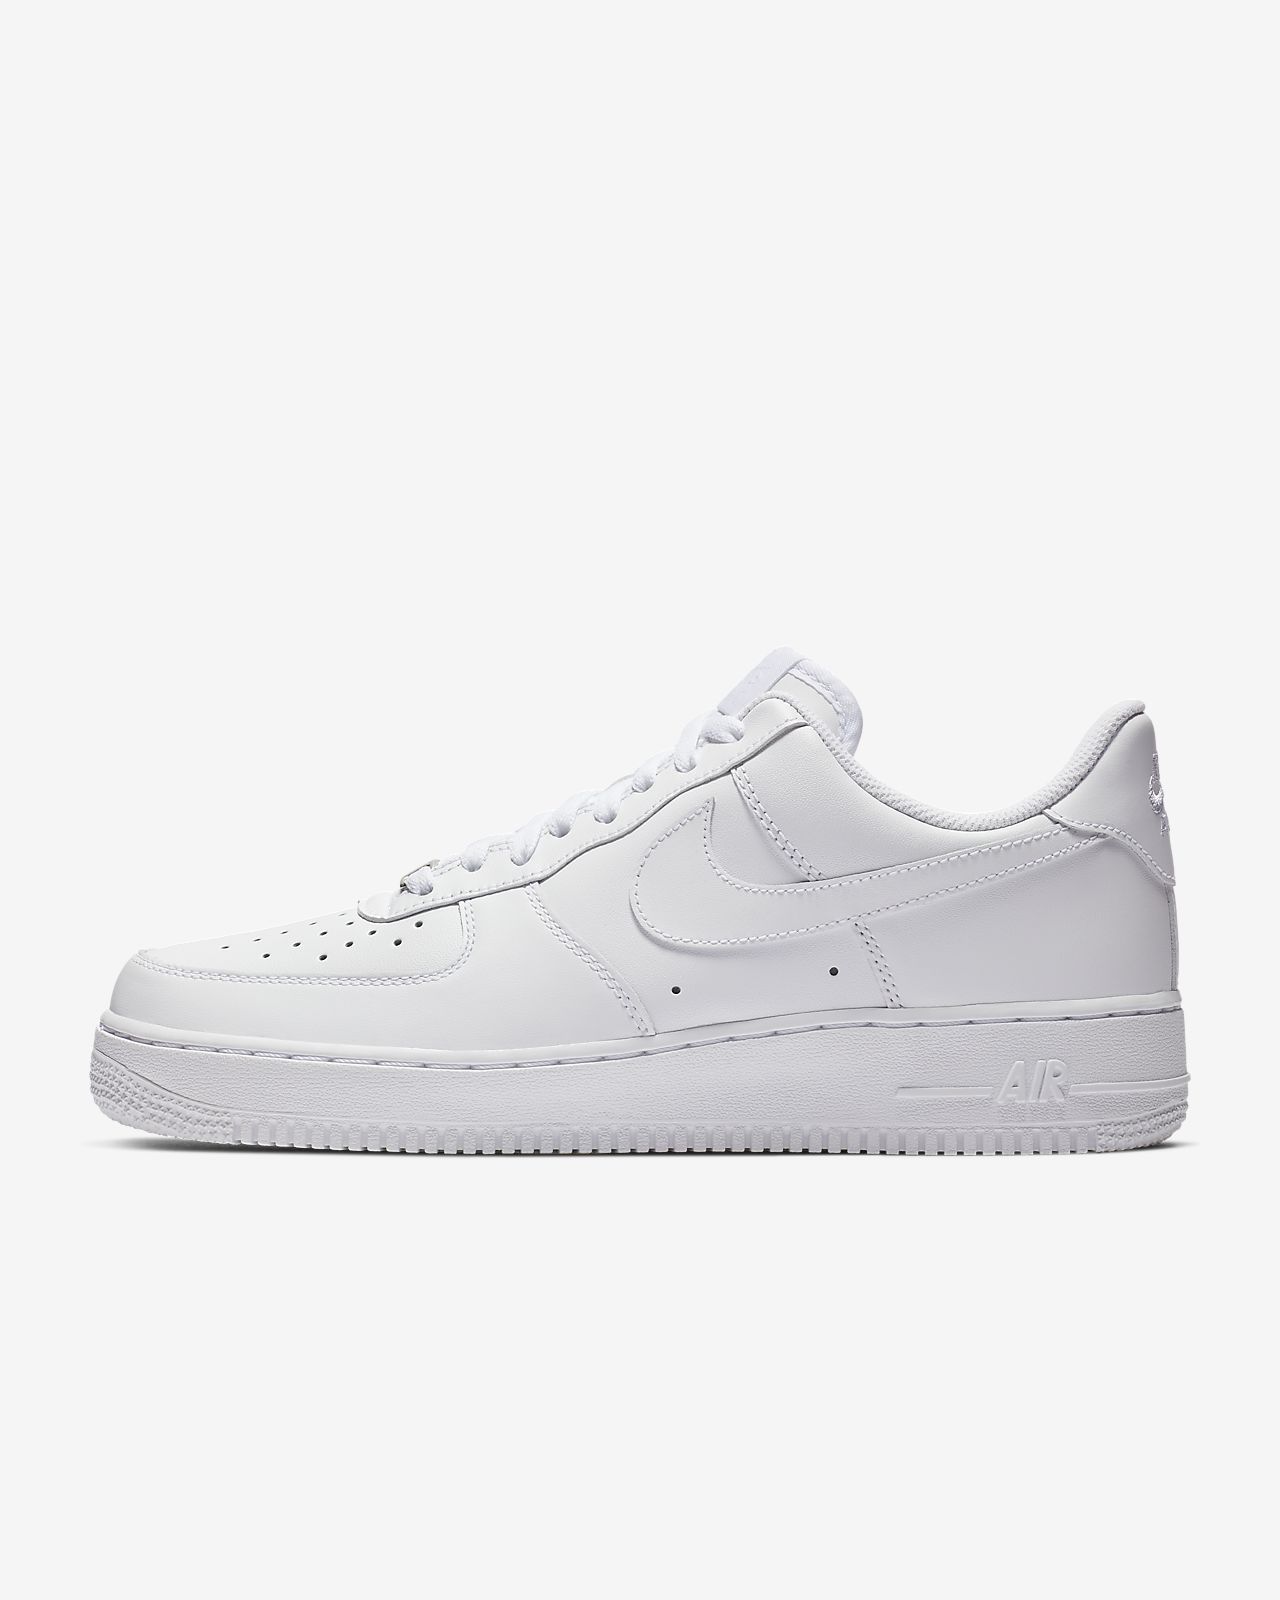 new style 9ede4 80866 Nike Air Force 1 '07 Women's Shoe